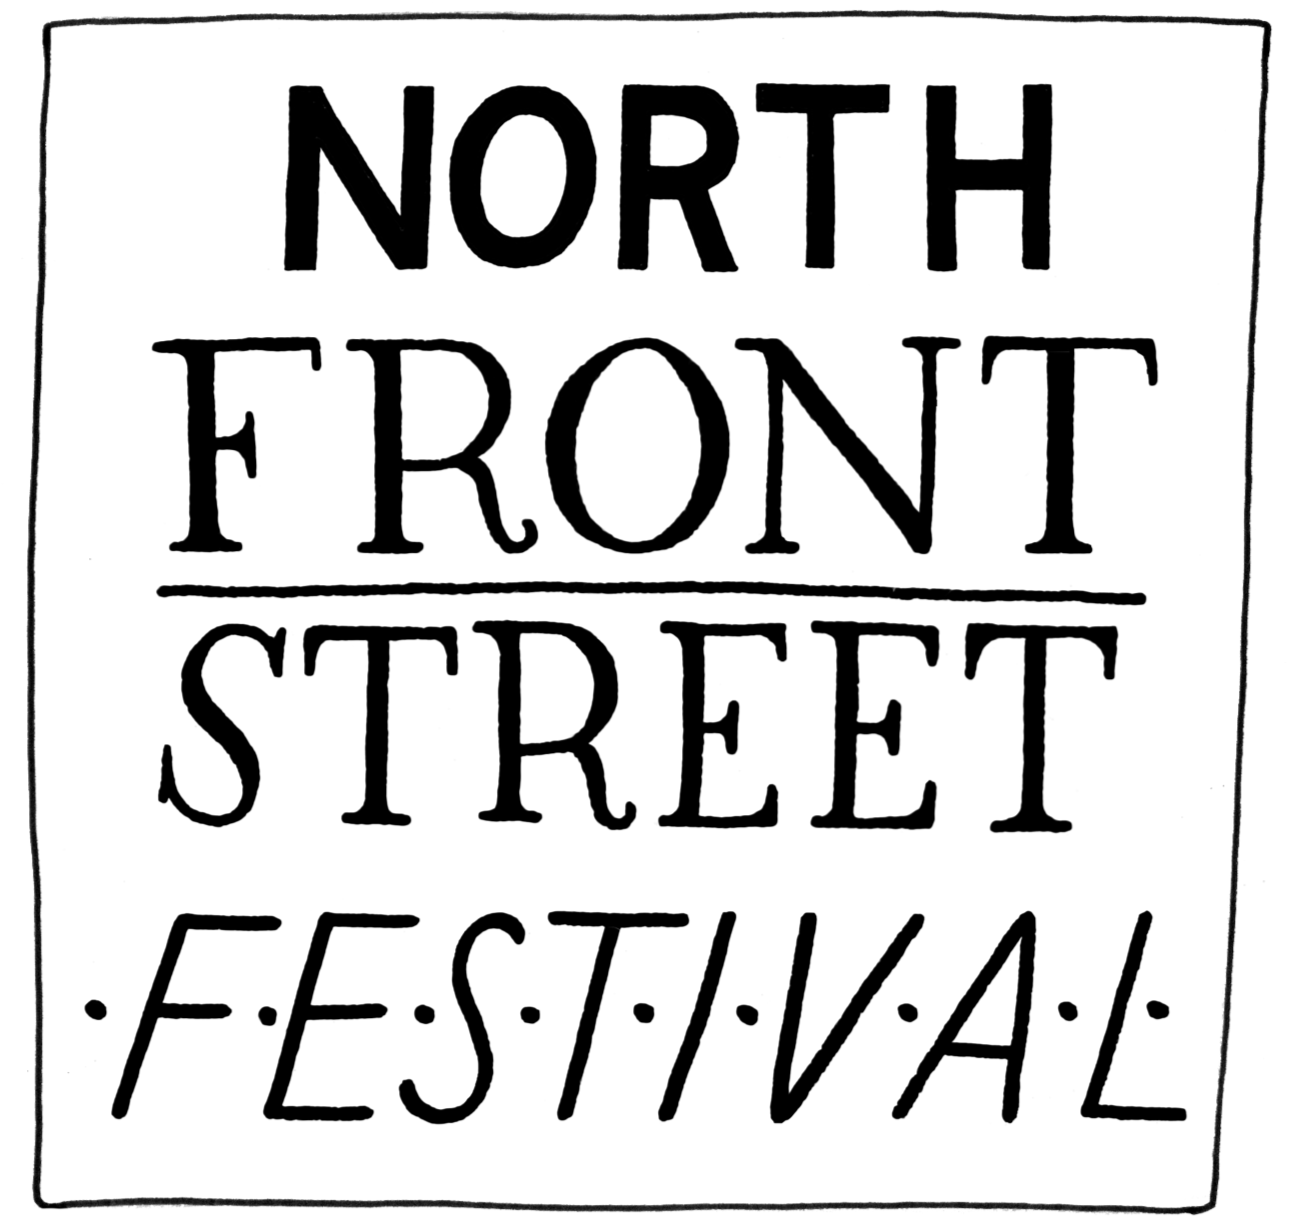 North Front Street Festival